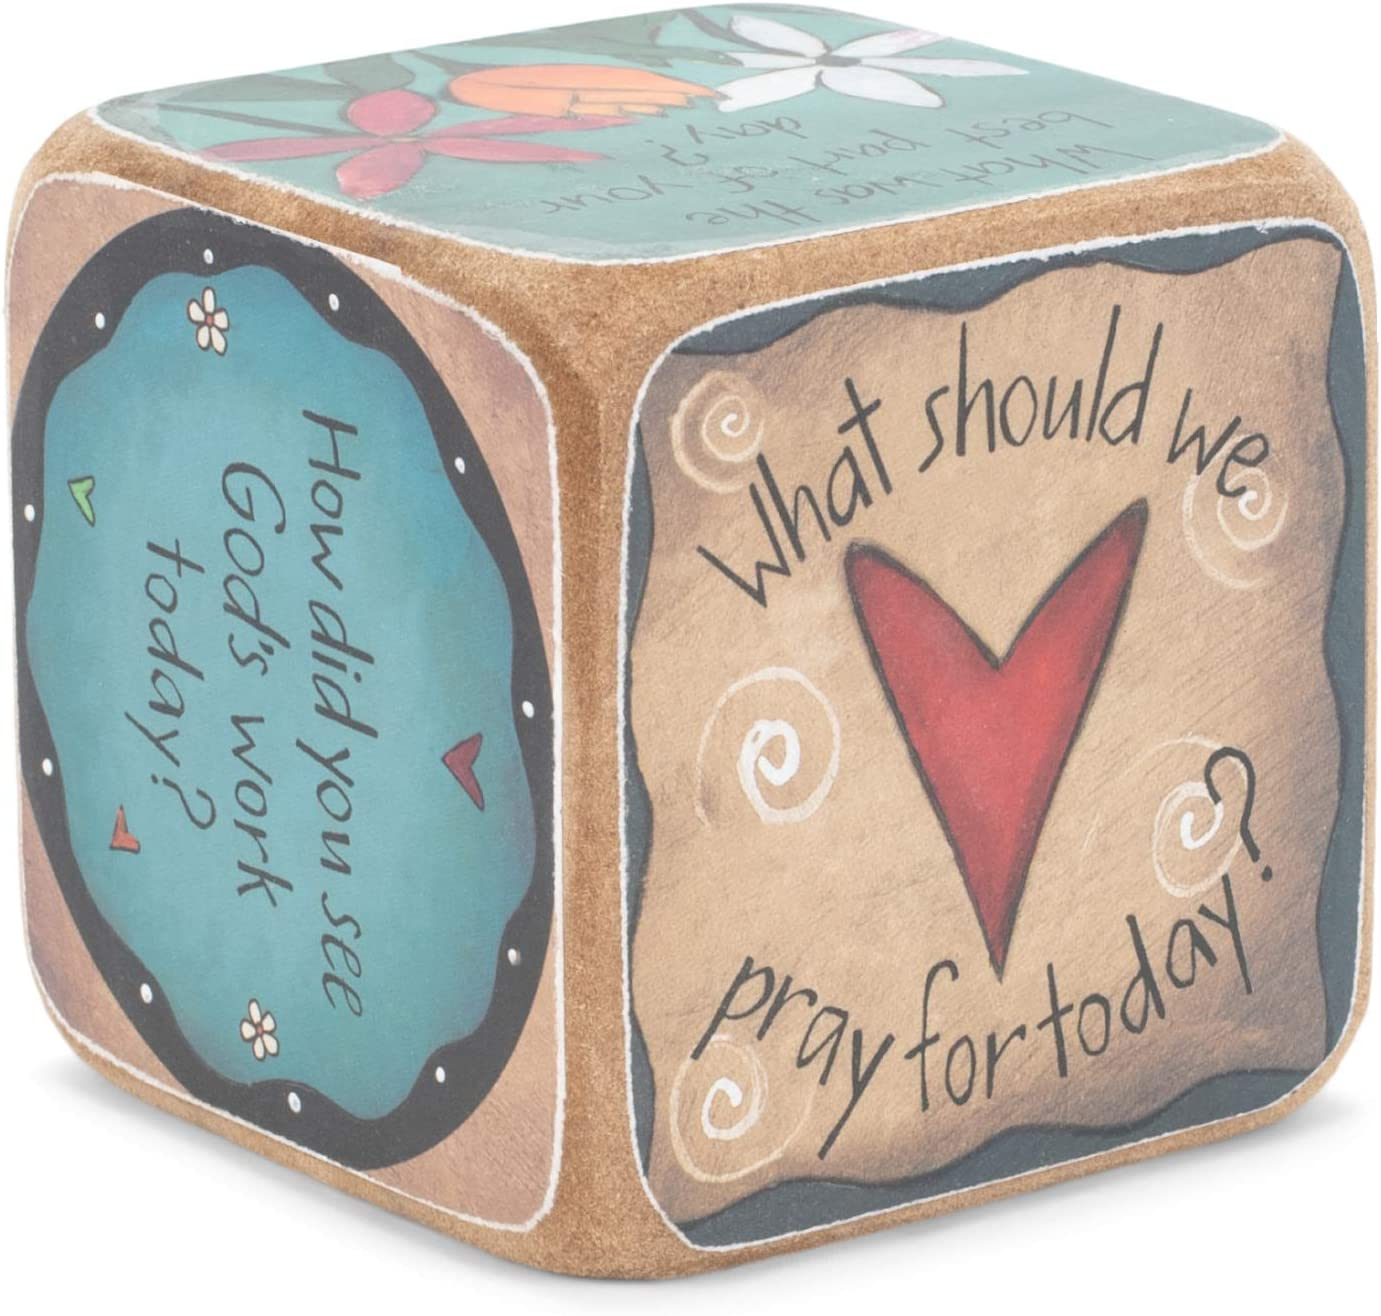 DEMDACO Table Talk Sweet Table Prayer Conversation Dice 3 in Square